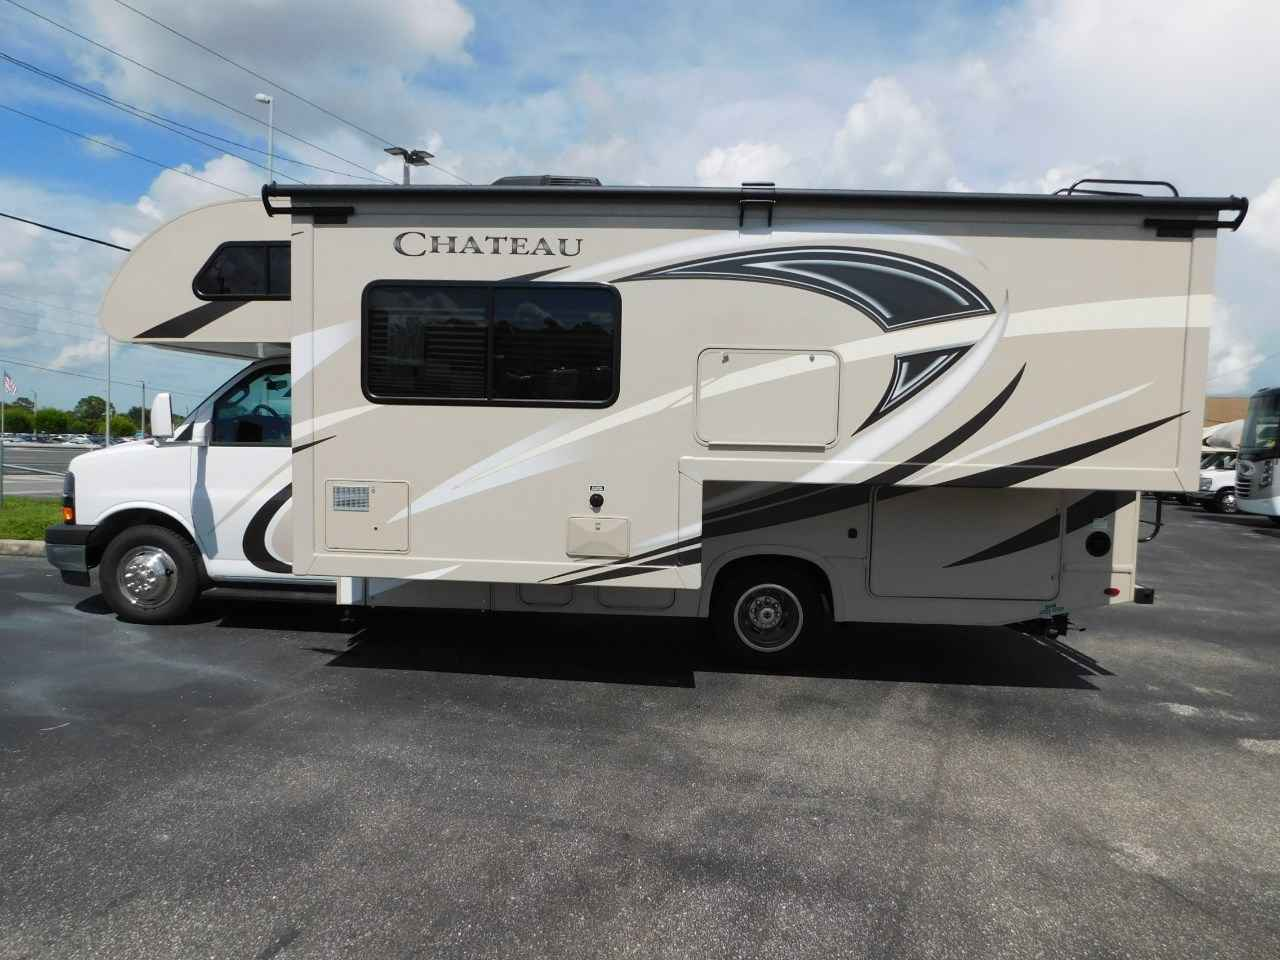 2018 new thor motor coach chateau 24f full wall slide for Class c motor coach